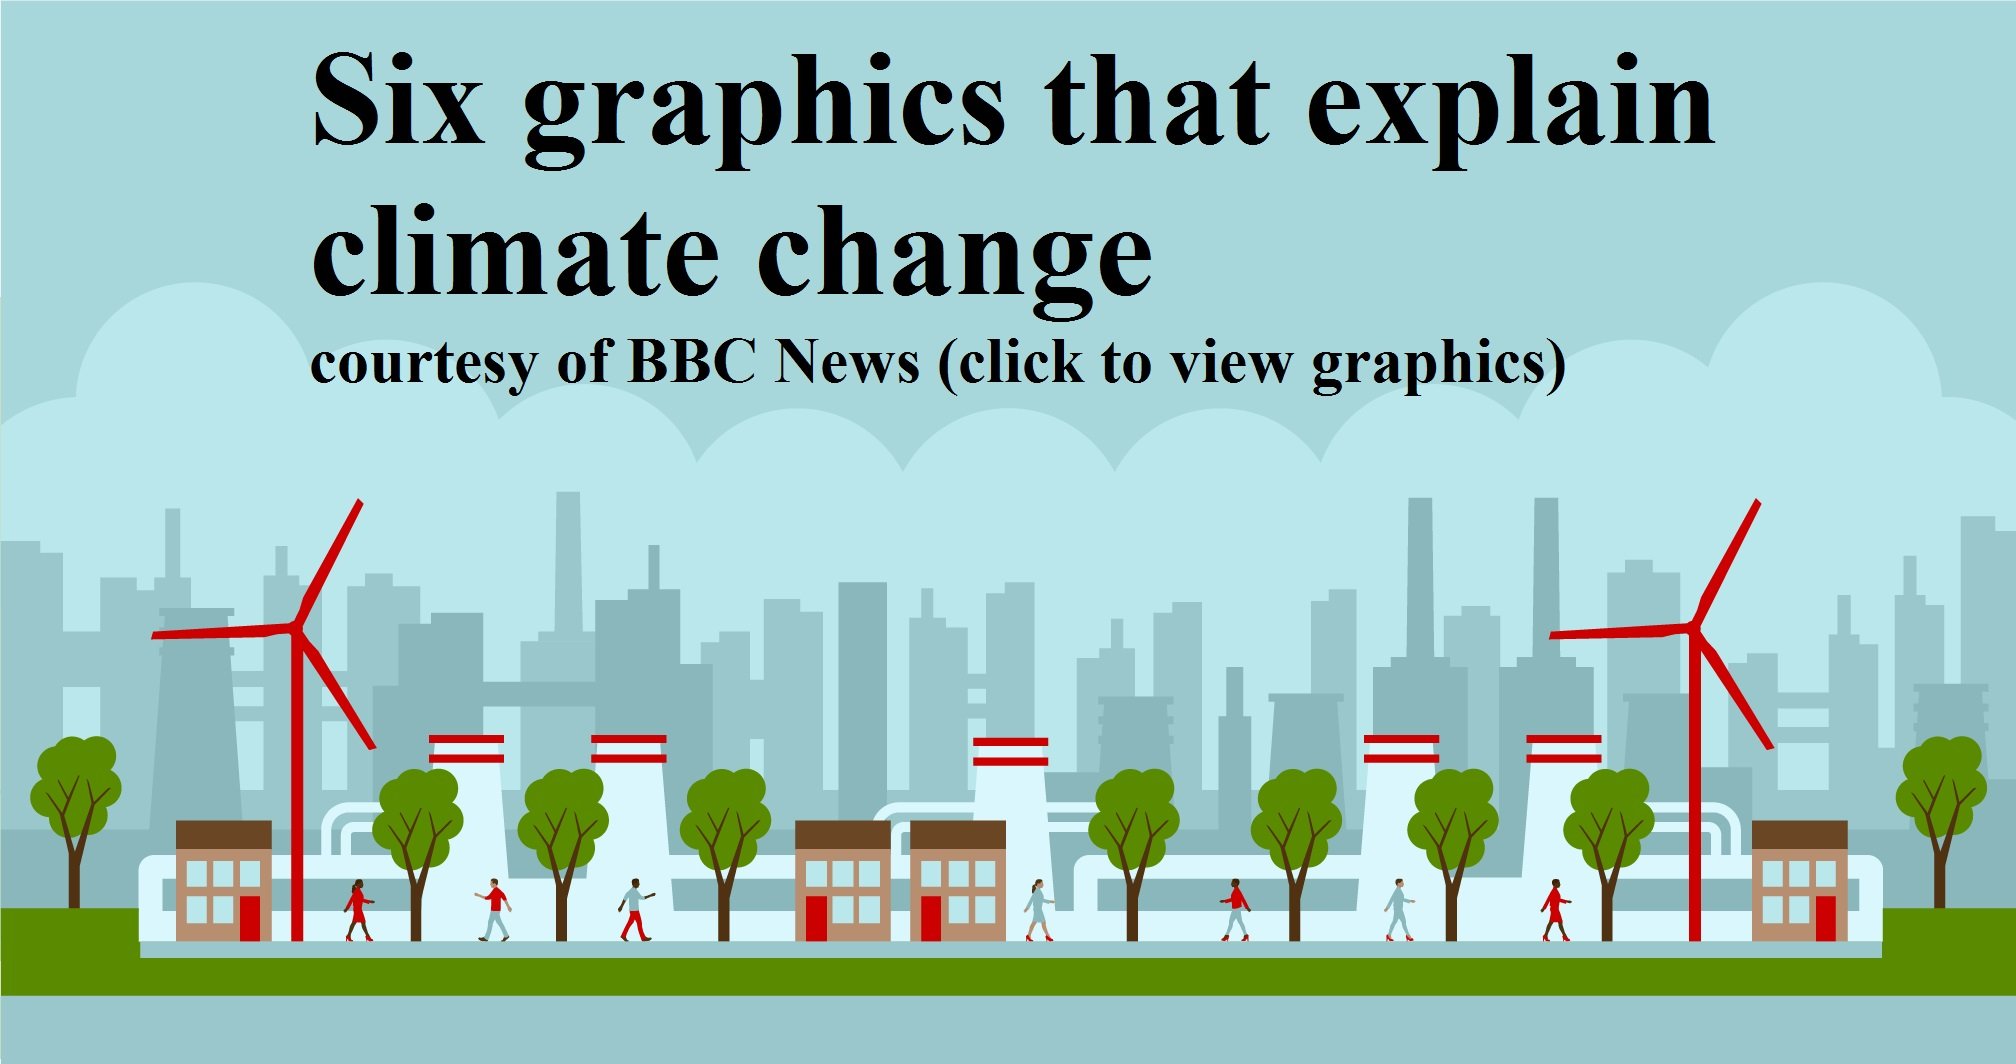 SIX GRAPHICS THAT EXPLAIN CLIMATE CHANGE FROM BBC NEWS